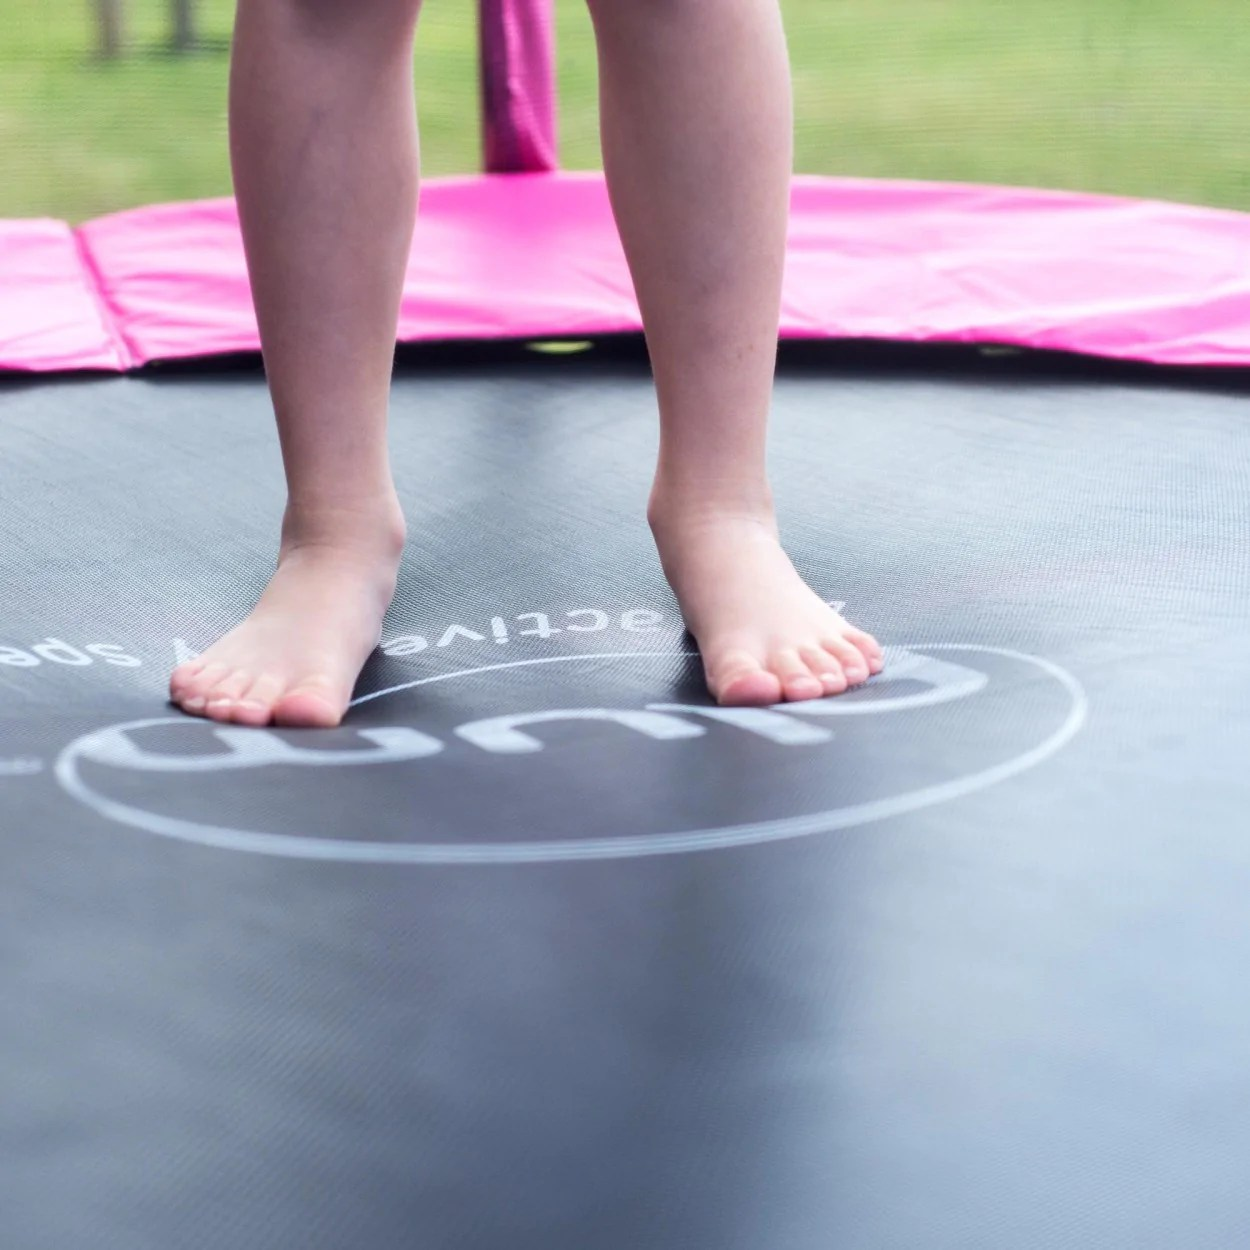 Plum 2.43 Metres 8ft Magnitude Premium Trampoline With Safety Enclos - Childhood Home Kids